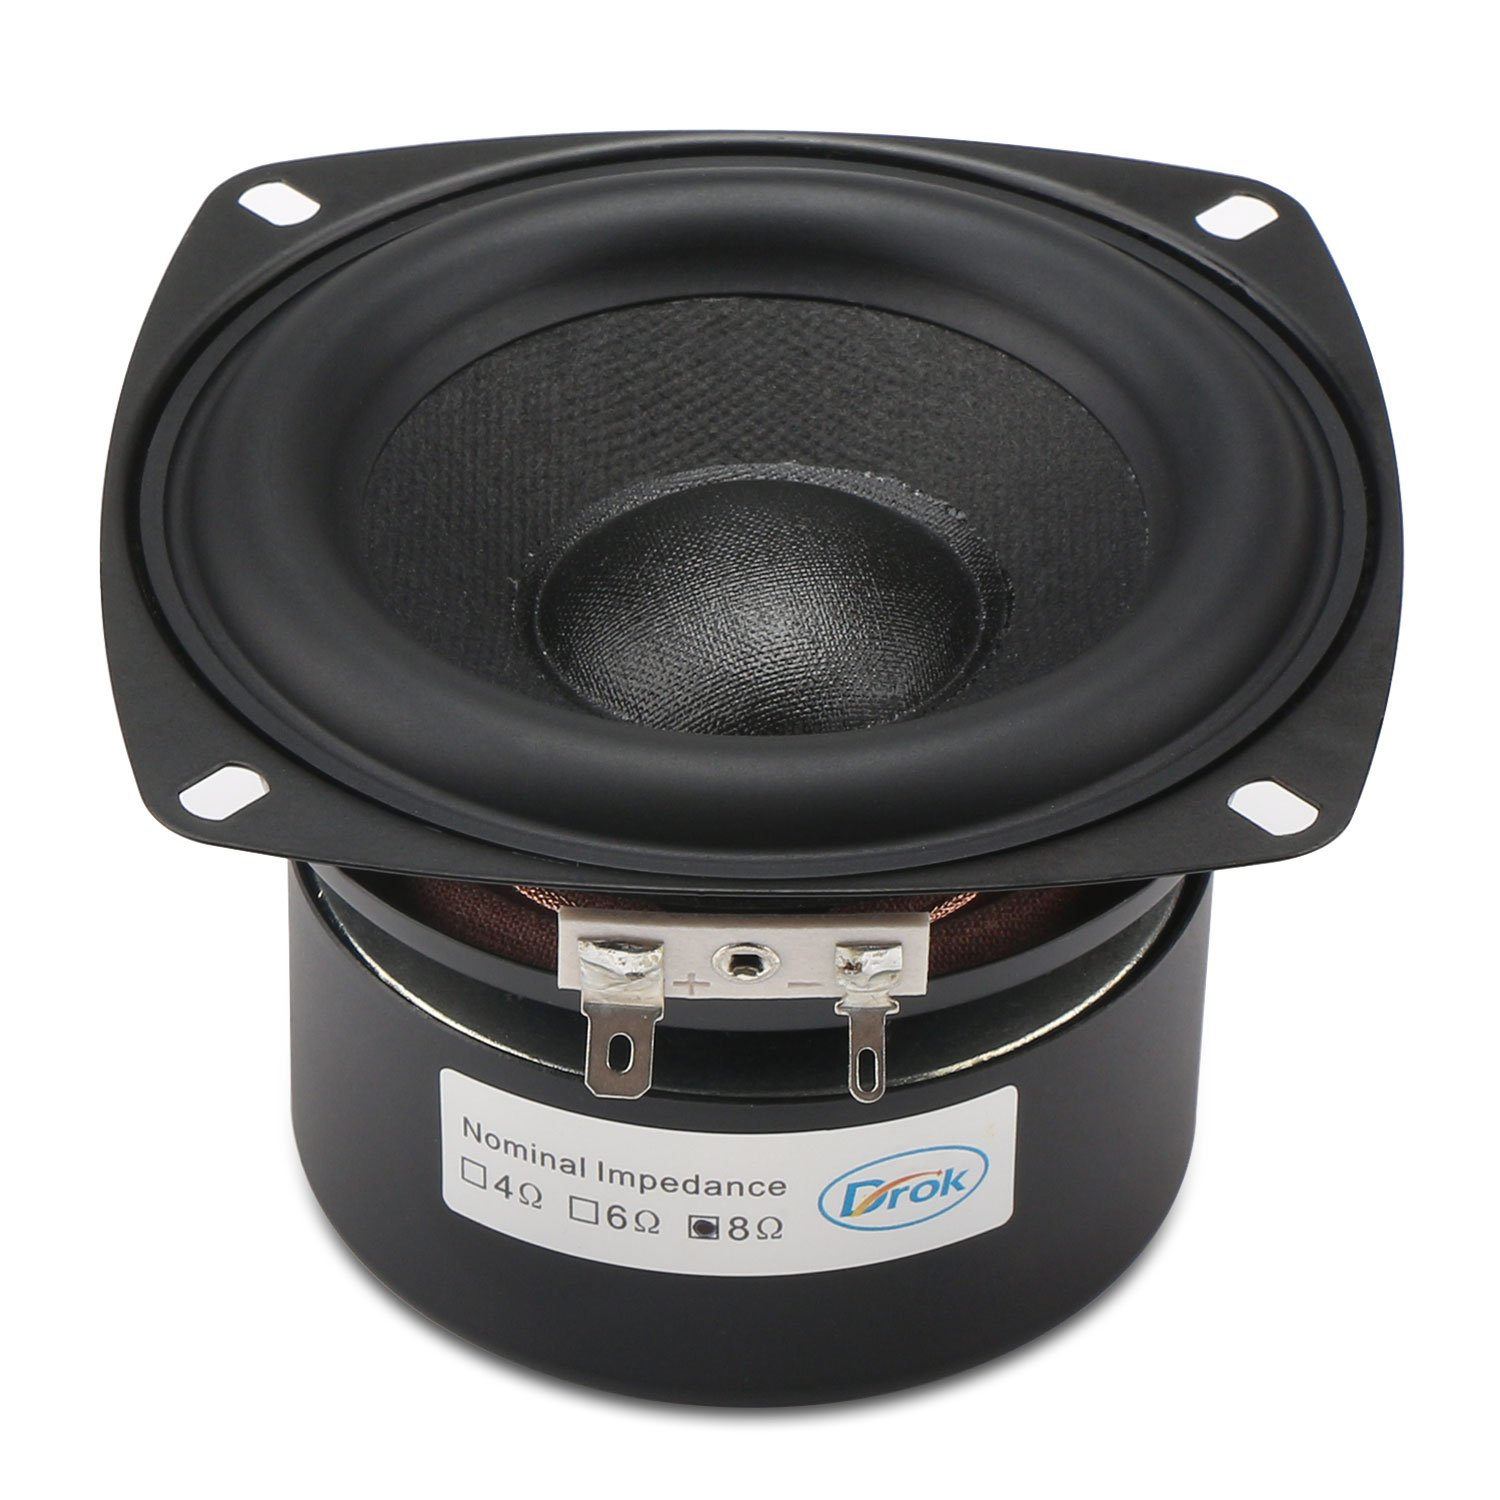 Cheap Diy Small Speakers, find Diy Small Speakers deals on